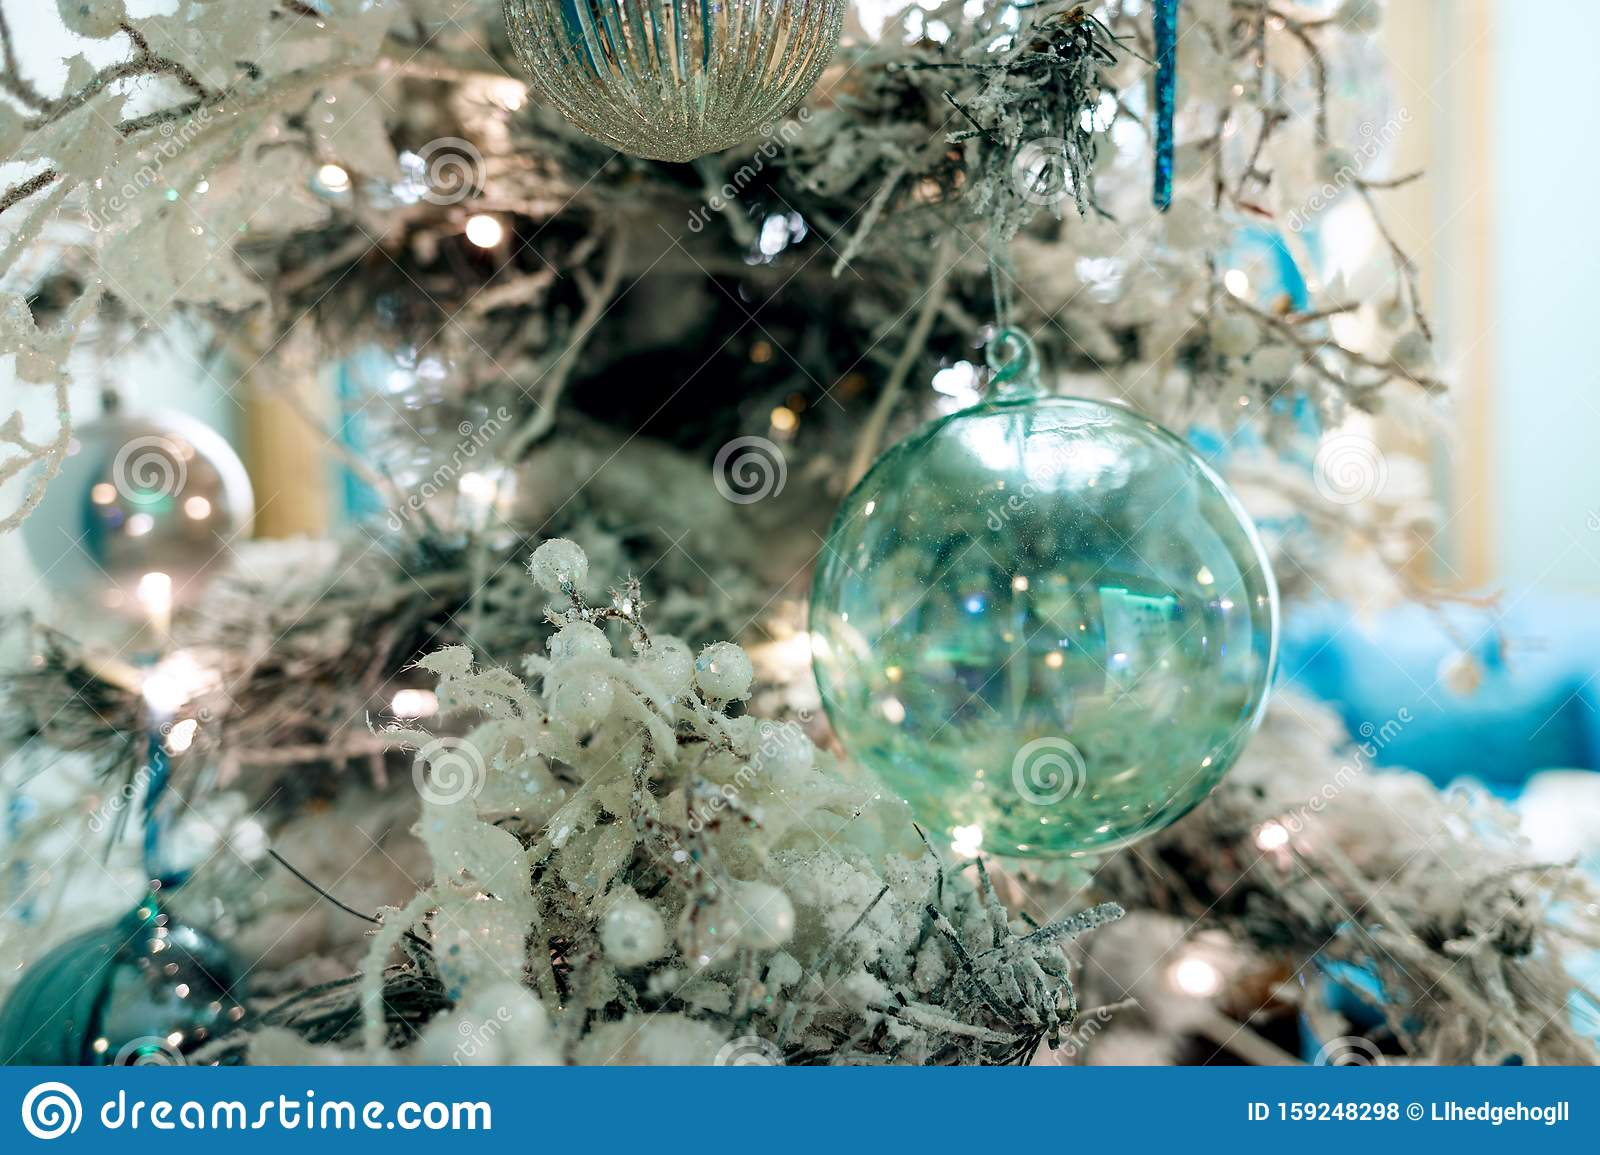 Christmas Tree With White Artificial Snow On Branches And Decorations Stock Photo Image Of Decoration Evening 159248298